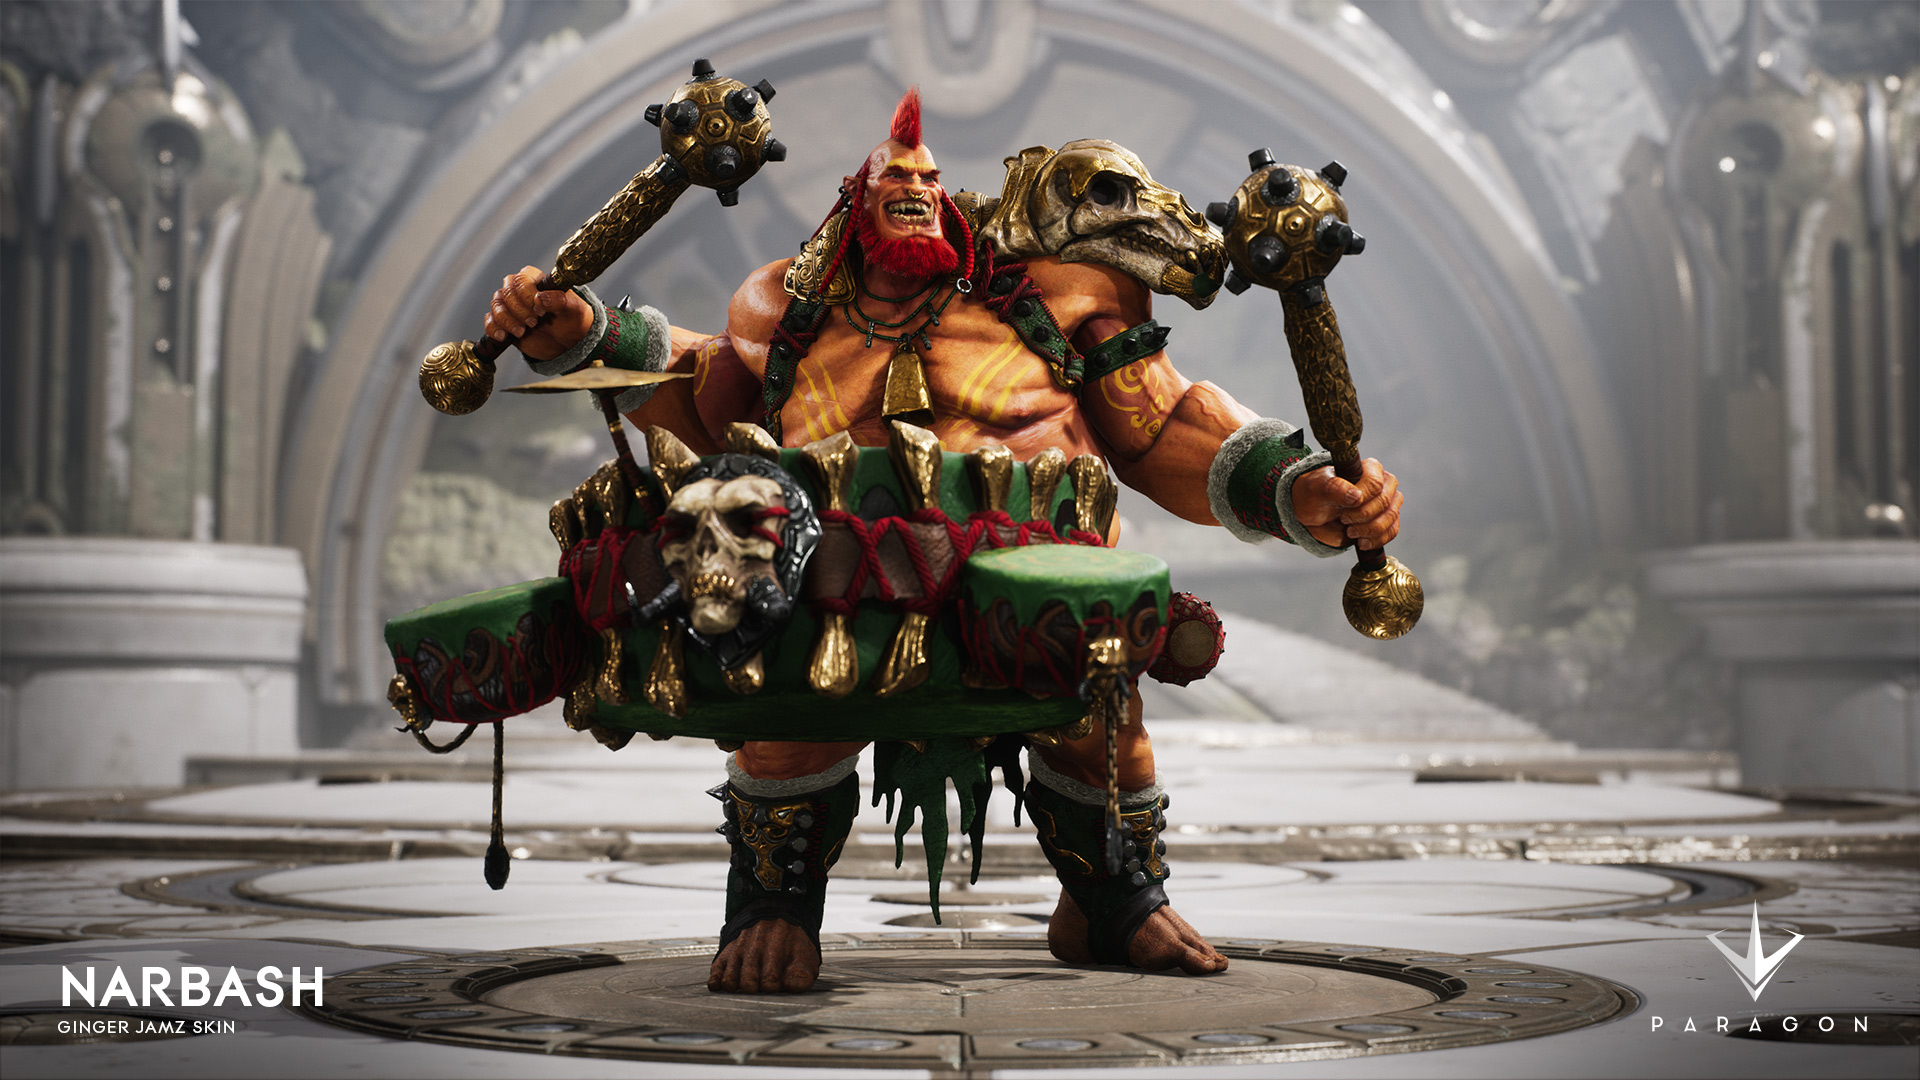 Paragon_Narbash_Skin_GingerJamz